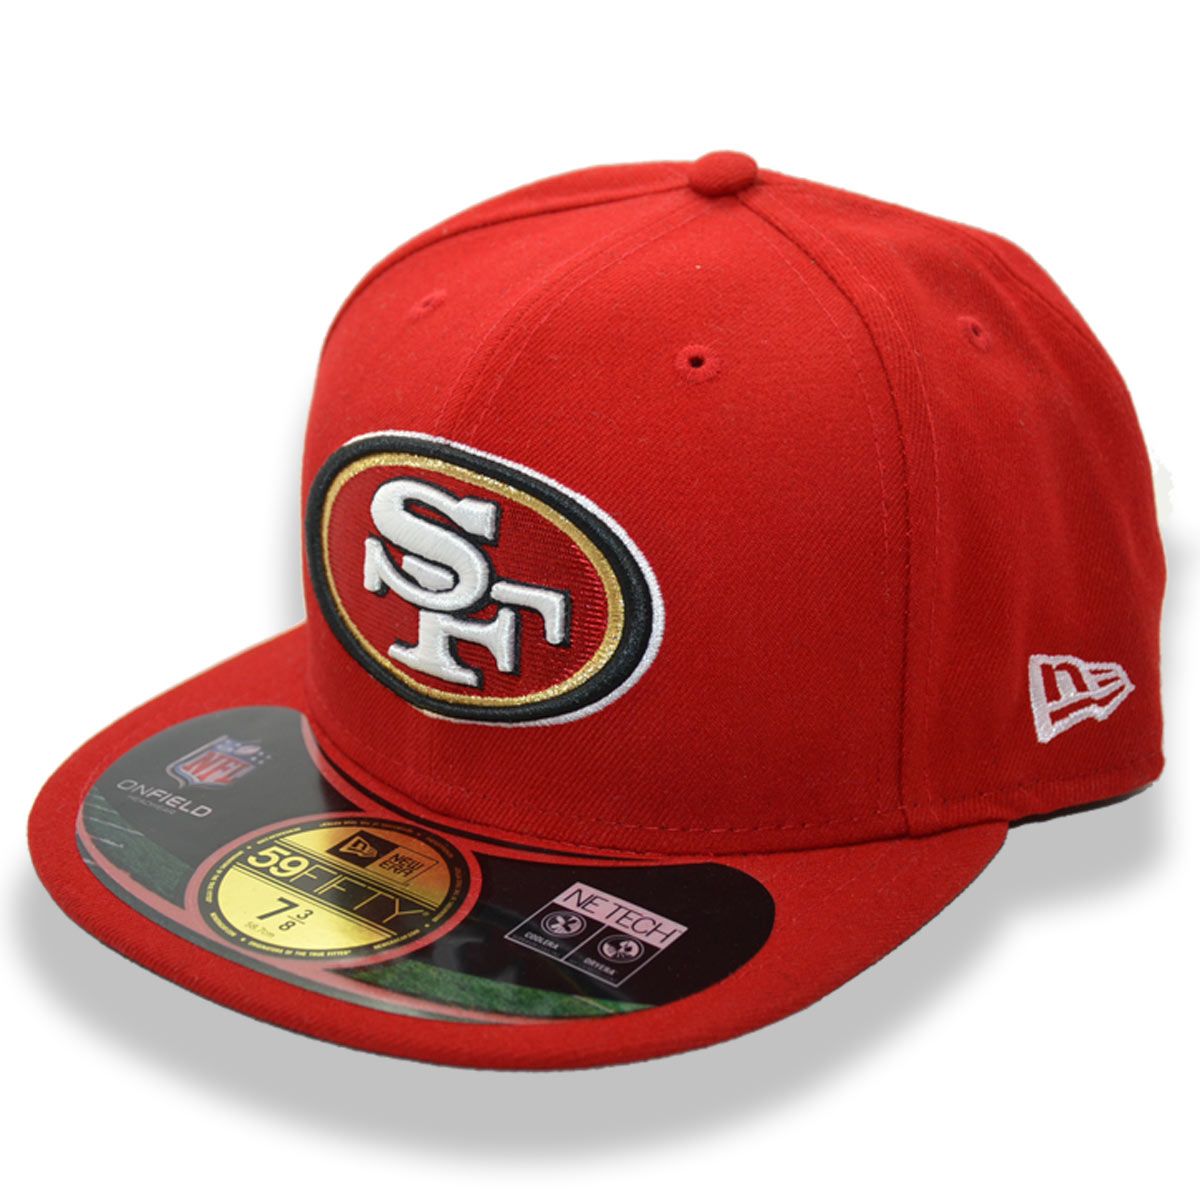 cheap for discount 6ea4f ddc73 Details about NEW ERA SF SAN FRANCISCO 49ERS NFL FITTED CAP 7 3 8 (58.7cm)